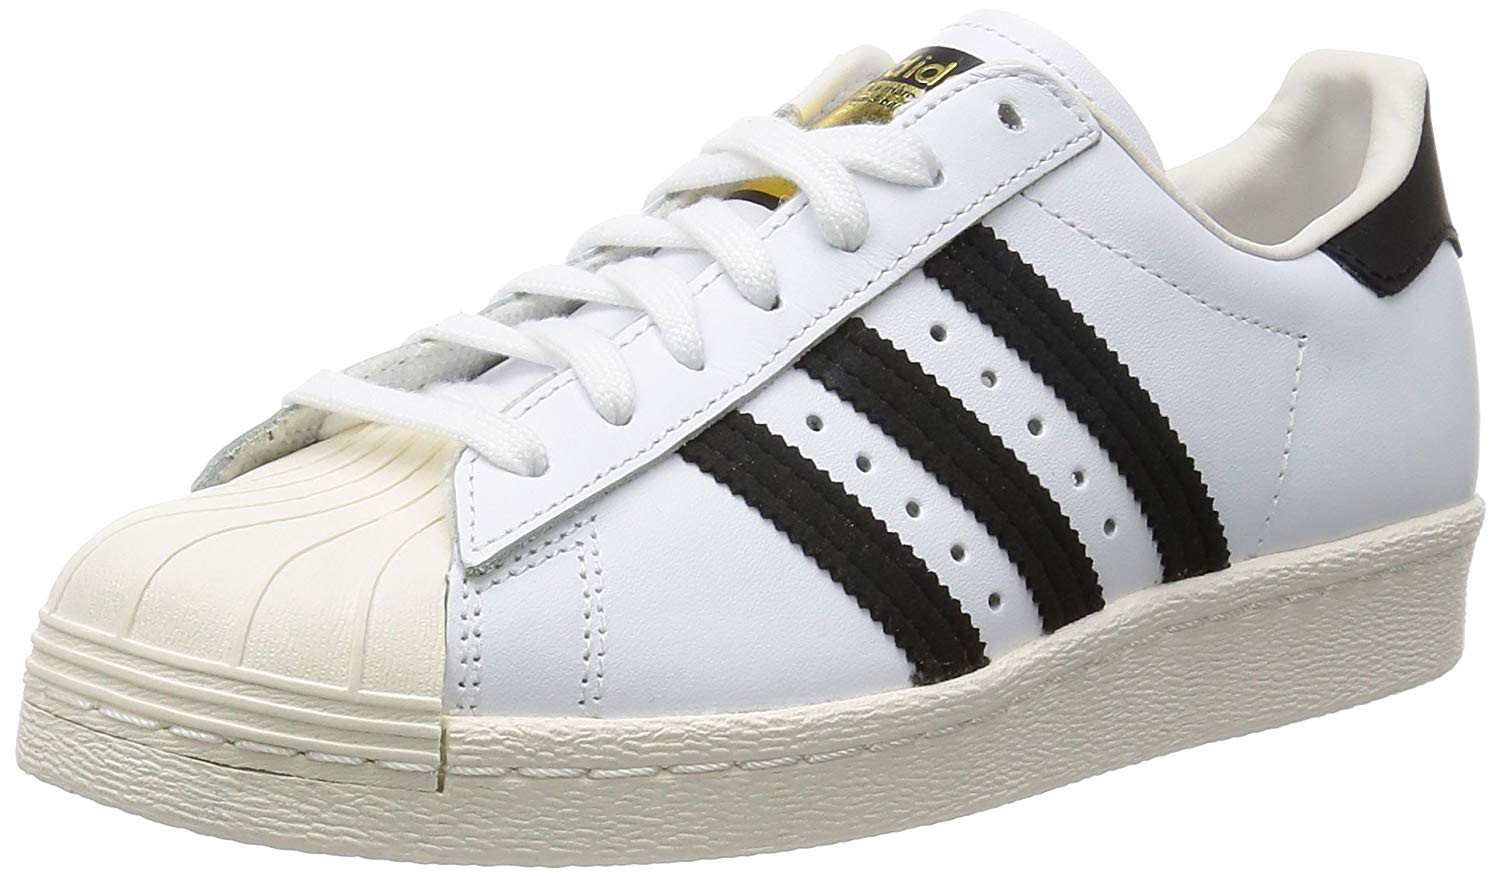 The Adidas Superstar: Still Funky After All These Years